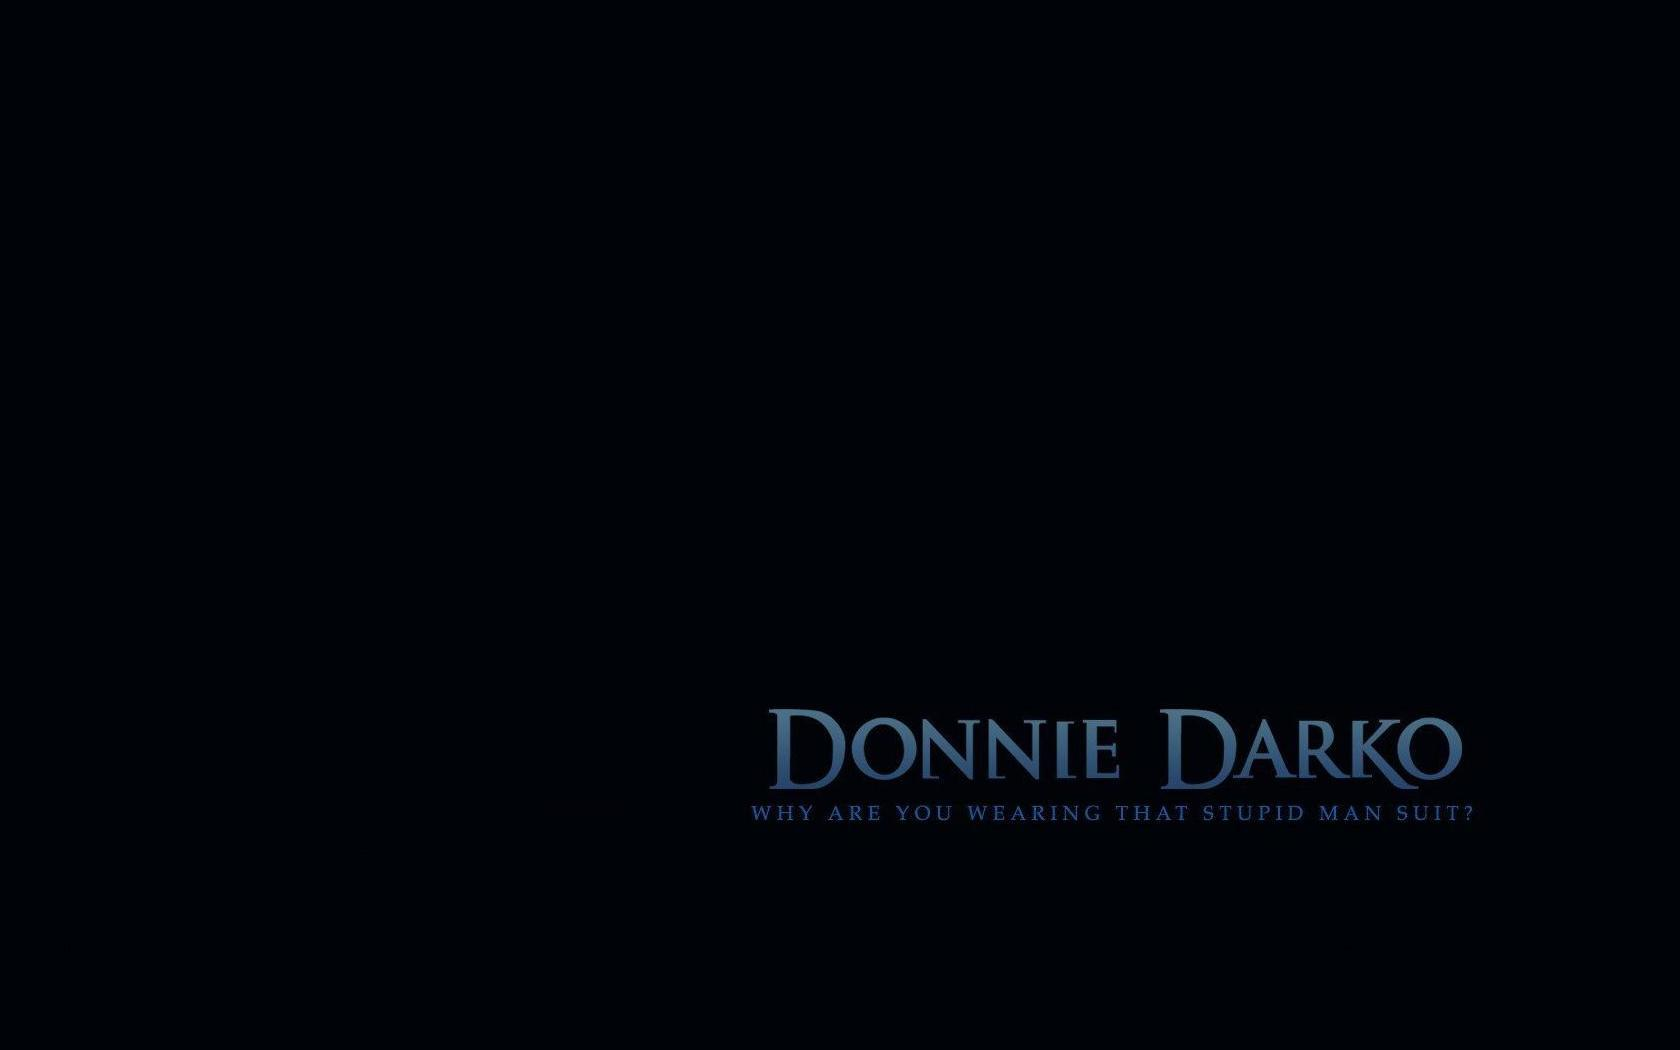 text donnie darko HD Wallpaper